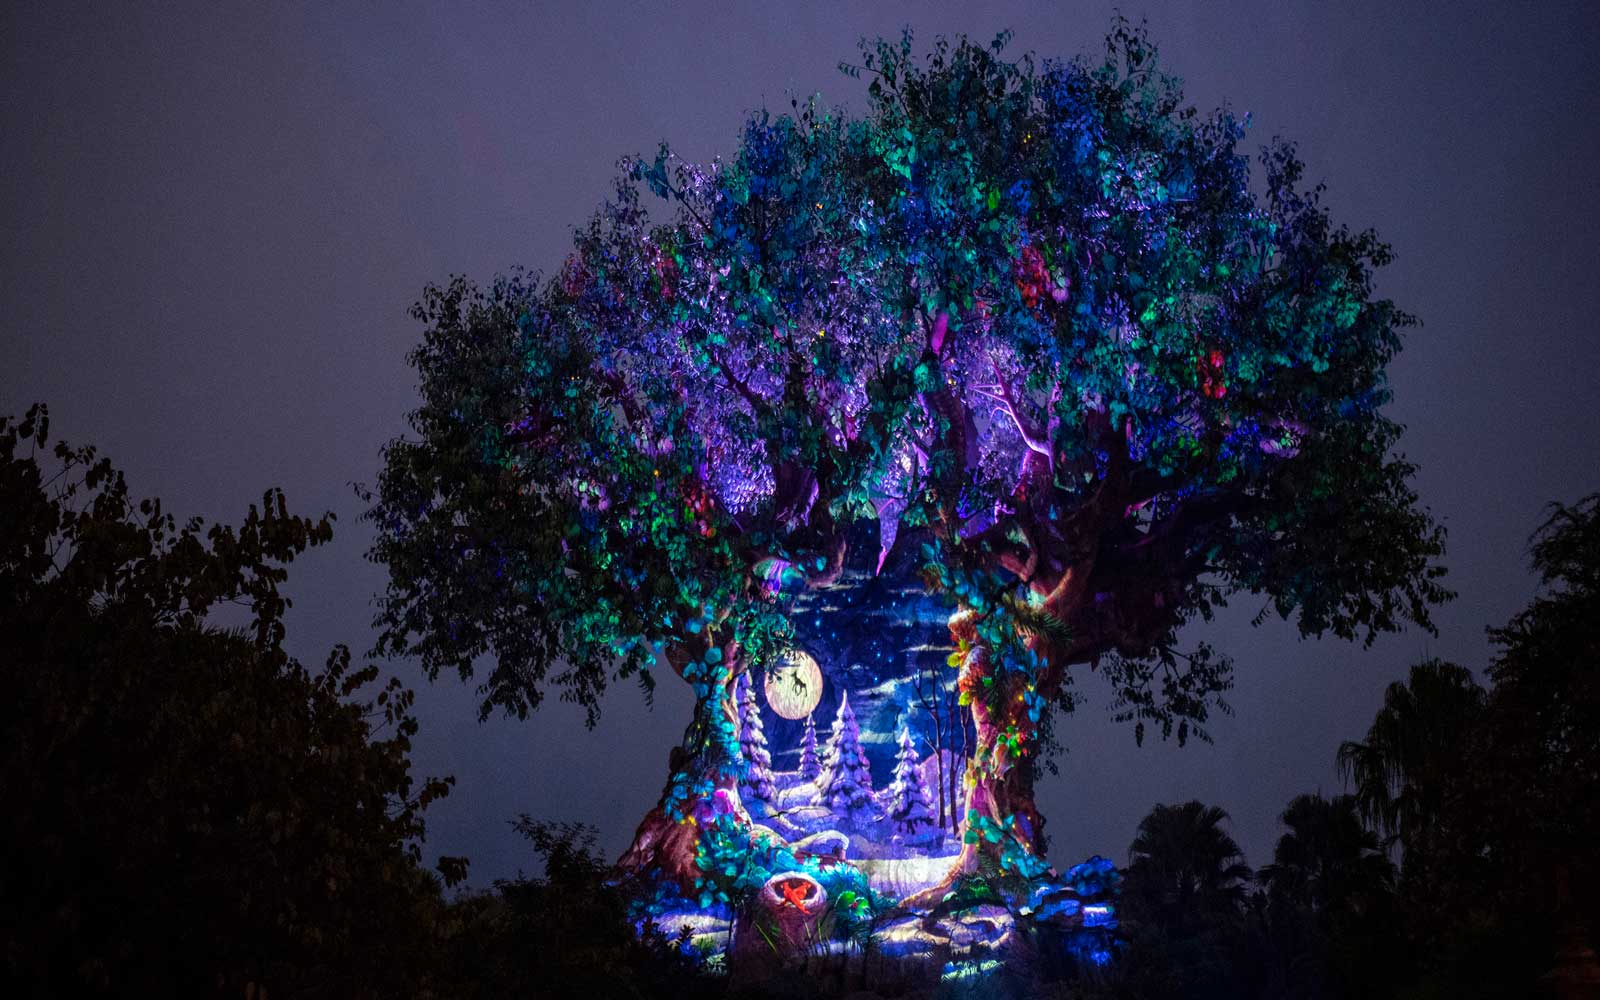 Walt Disney World's Animal Kingdom during the holidays